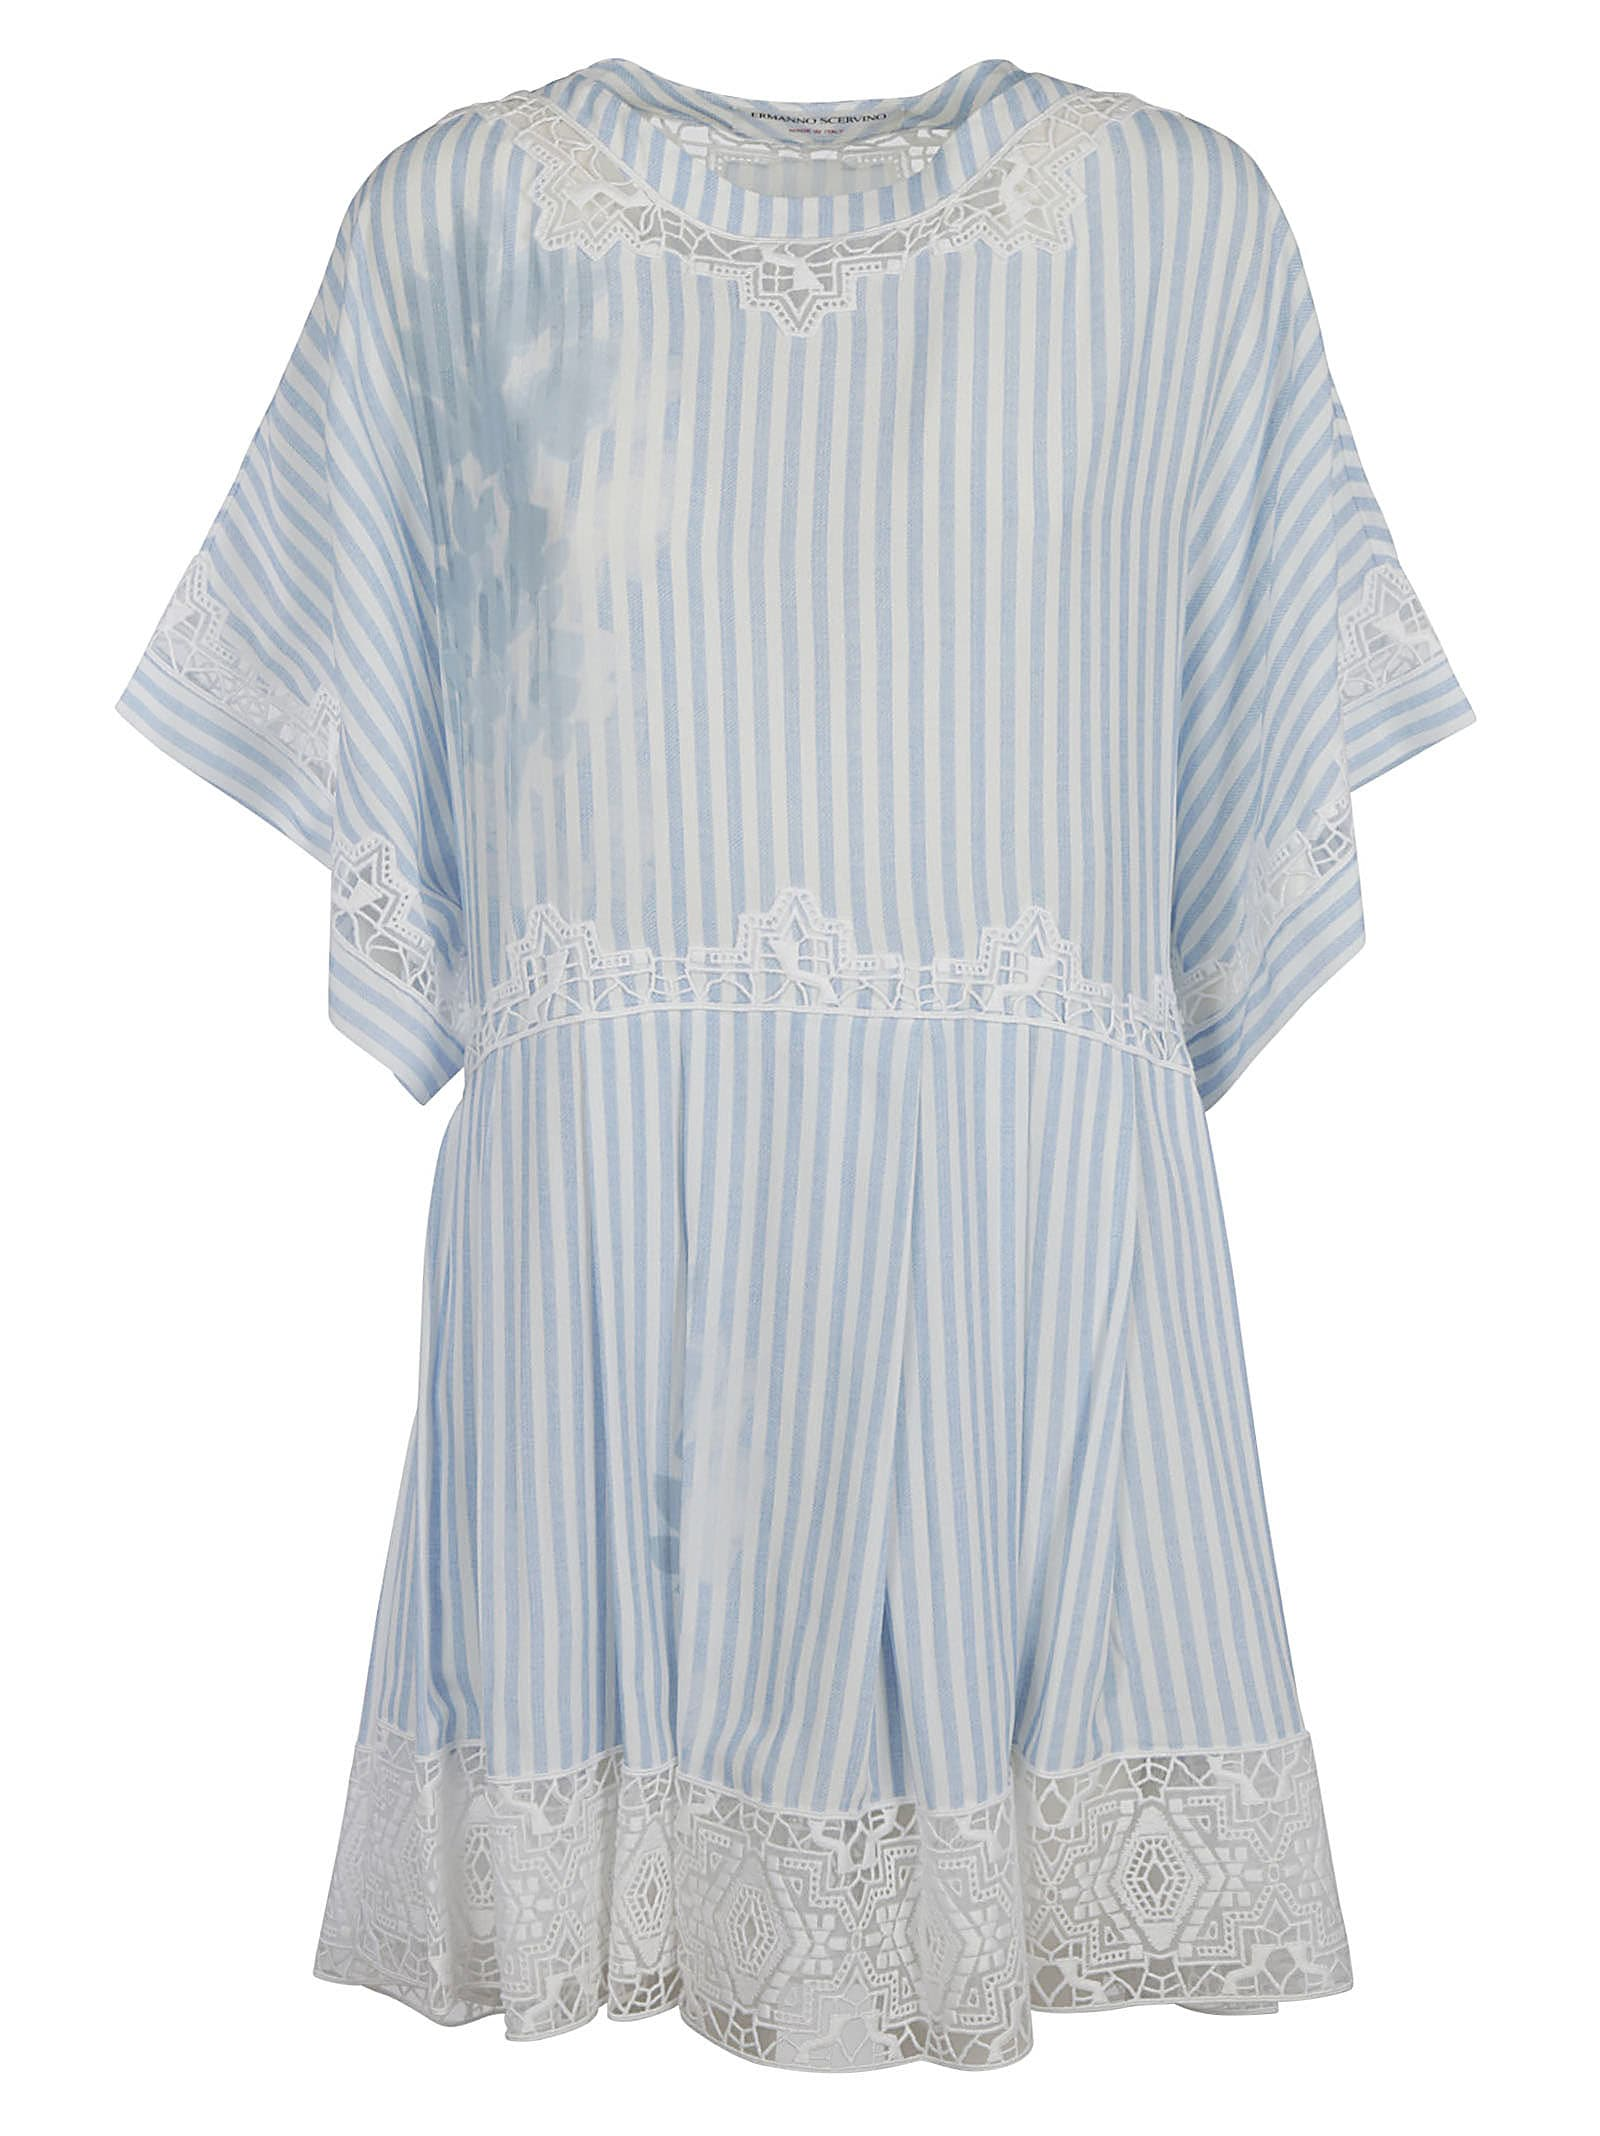 Ermanno Scervino Stripe Lace Dress